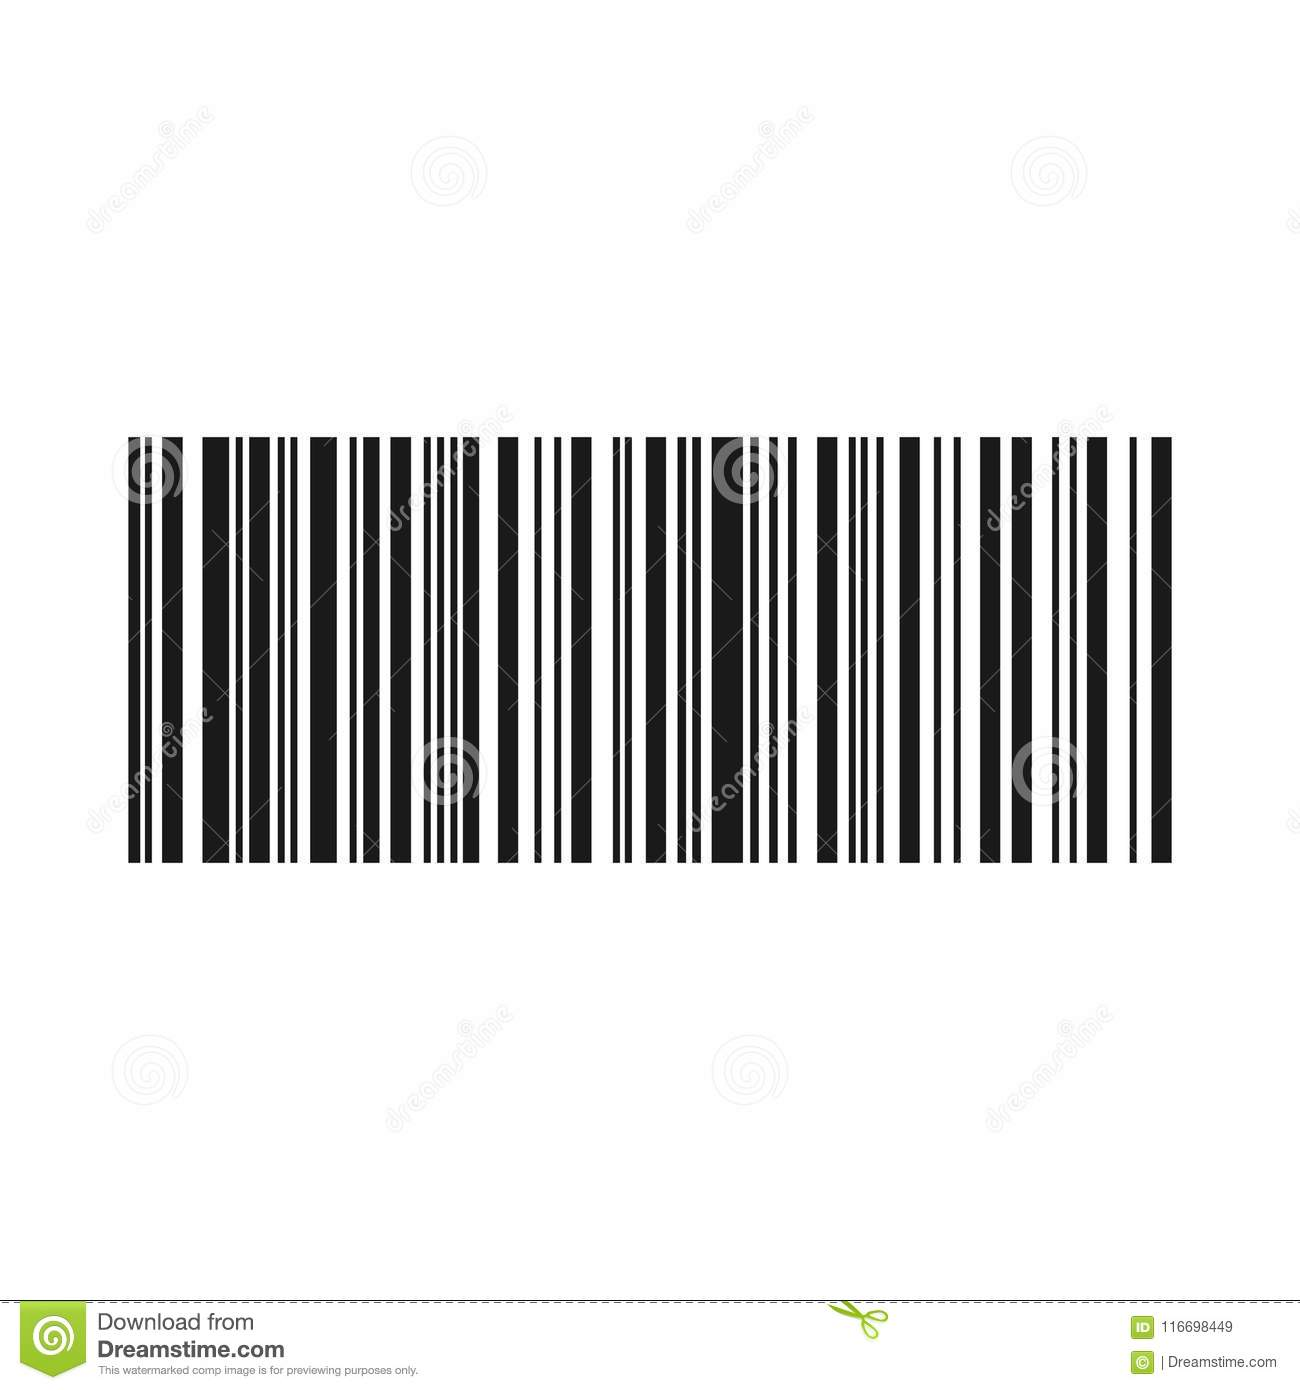 barcode  barcode with meaning   this is barcode   barcode